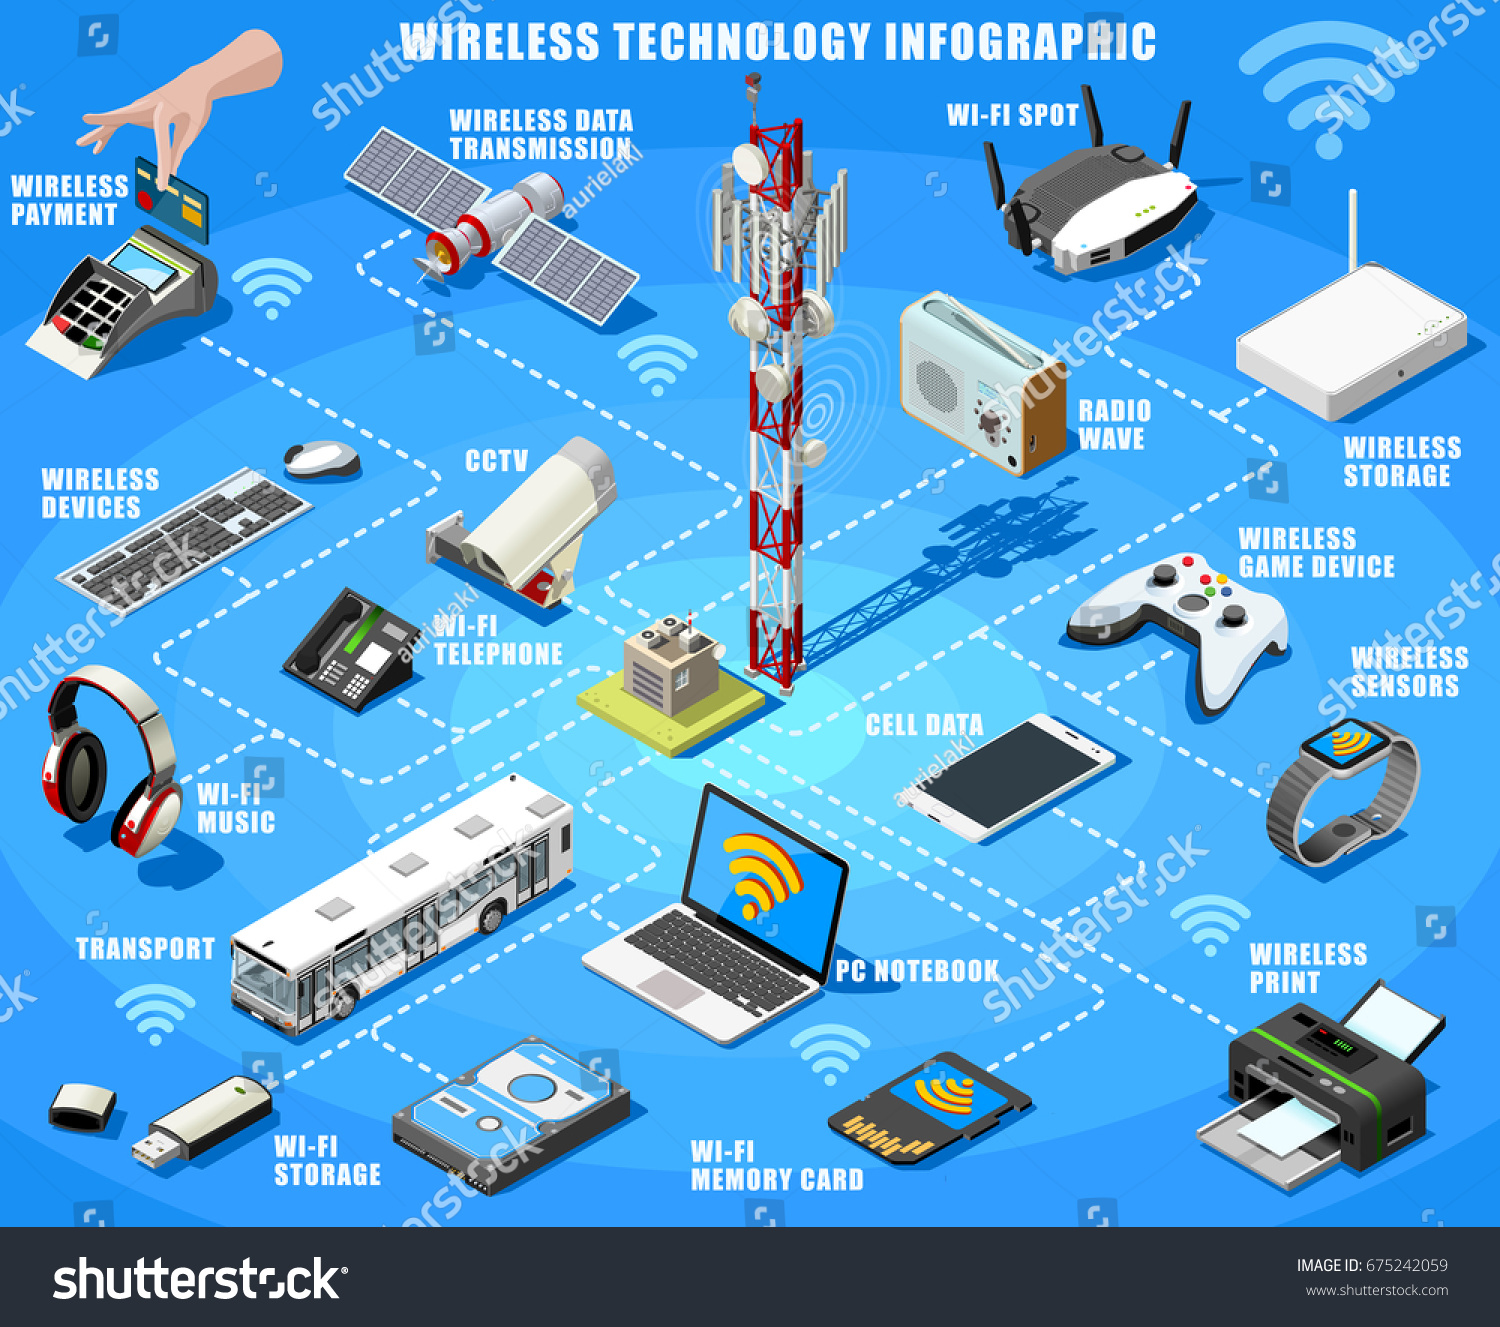 Smartphone Electronic Devices Wireless Connection Technology Stock Set Up Printer Diagram And Infographic Isometric Poster Of Internet Access Flowchart With